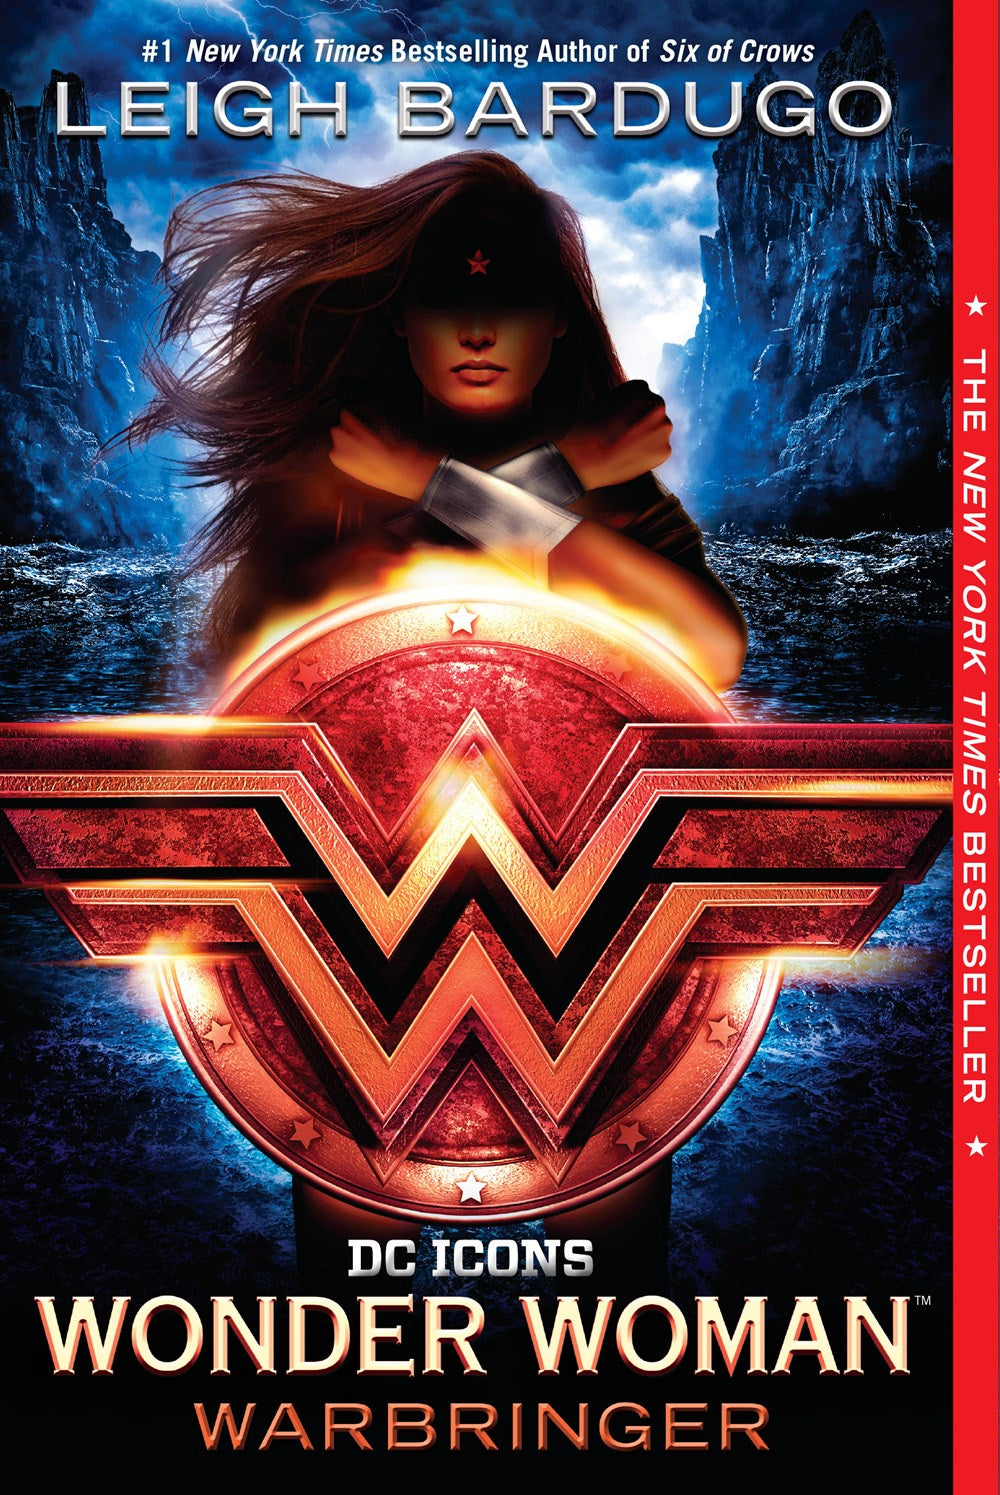 WONDER WOMAN: WARBRINGER (PB)